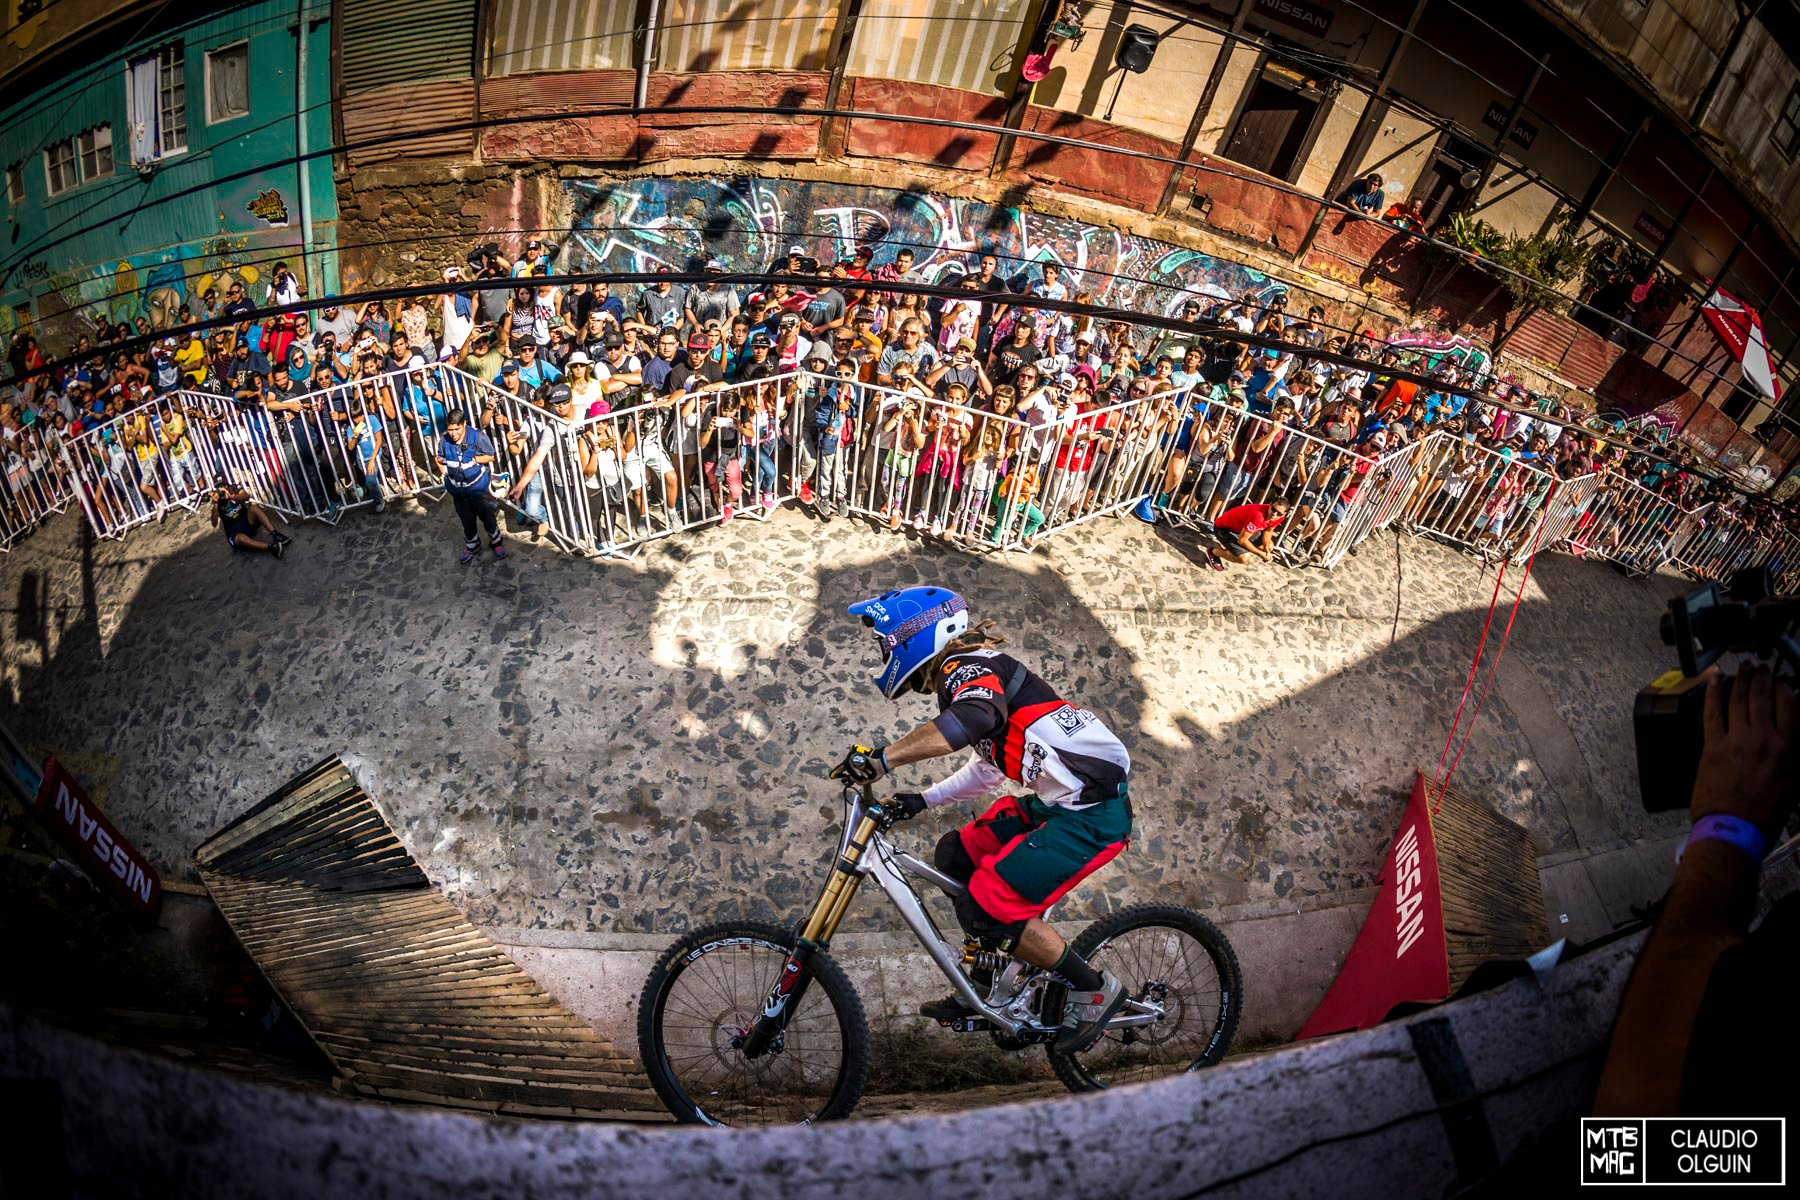 Dennis Tondin performs during the Red Bull Valparaiso Cerro Abajo, in Valparaiso, Chile on February 21st, 2016